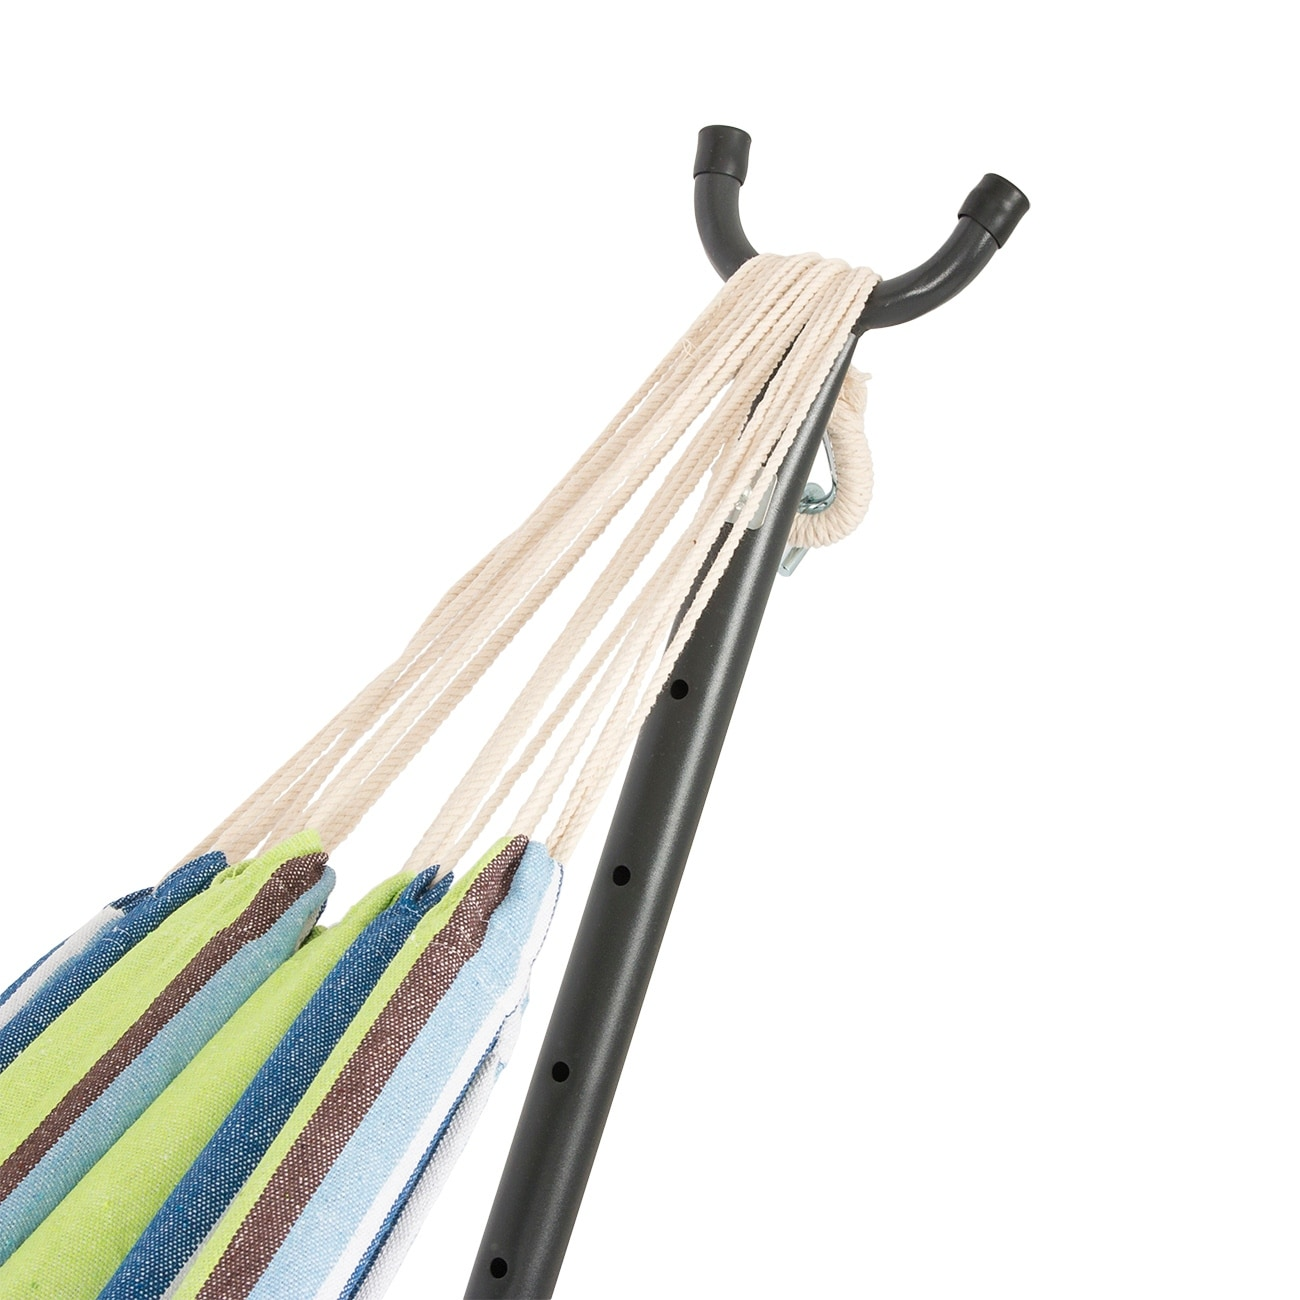 belleze 10ft double hammock stand with carrying bag portable set oasis   free shipping today   overstock     22281993 belleze 10ft double hammock stand with carrying bag portable set      rh   overstock